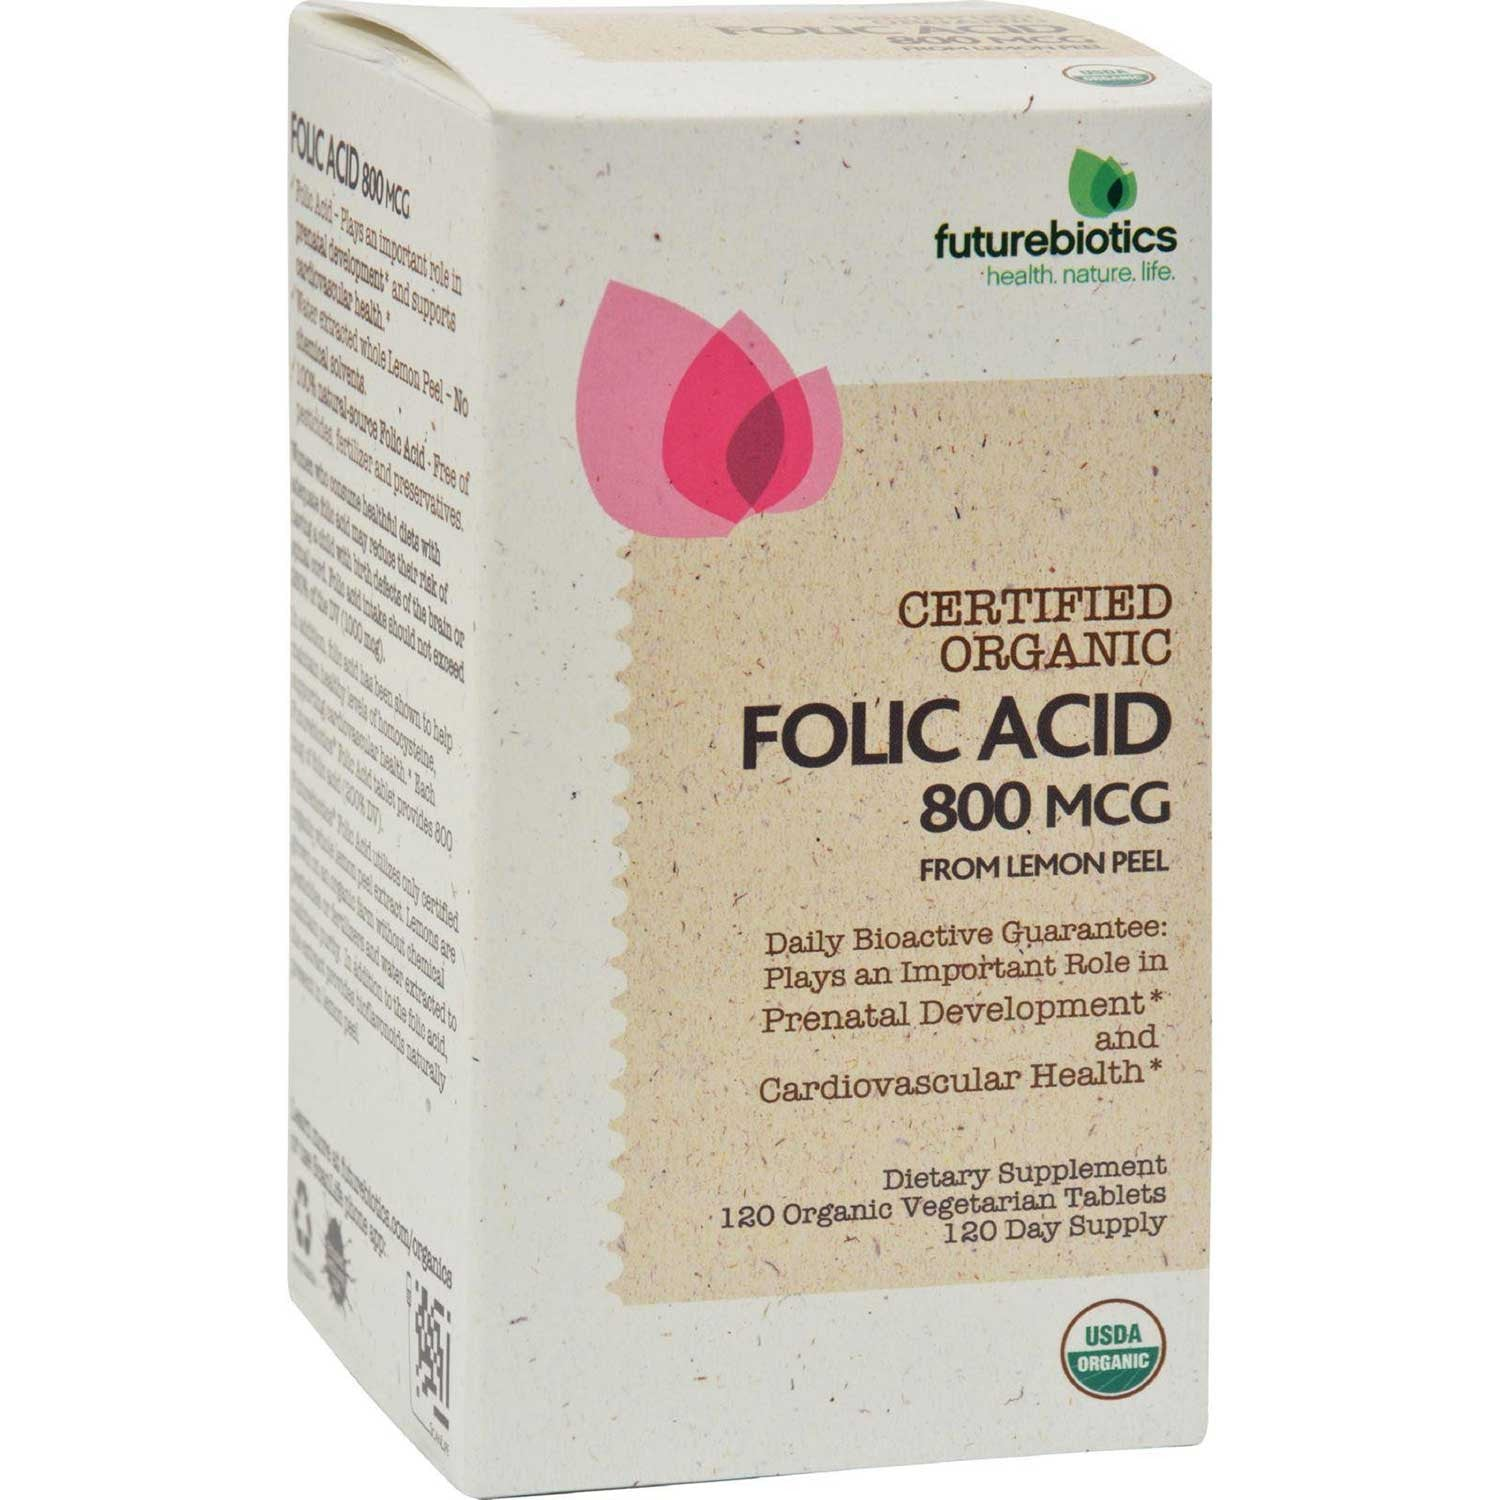 Futurebiotics Folic Acid - Certified Organic, 120 tabs.-NaturesWisdom